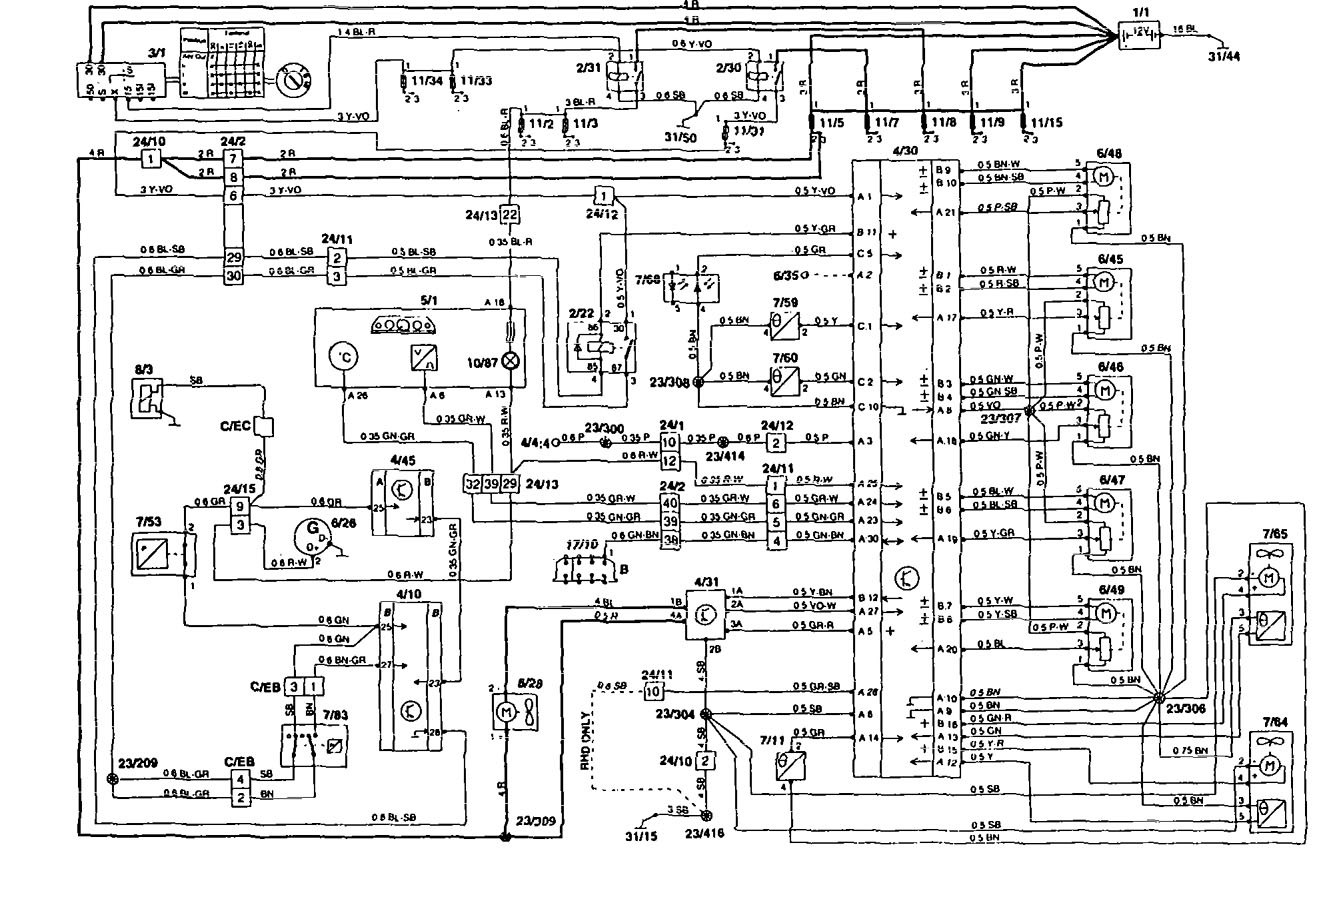 Honda Fit Wiring Diagram Hvac : 29 Wiring Diagram Images